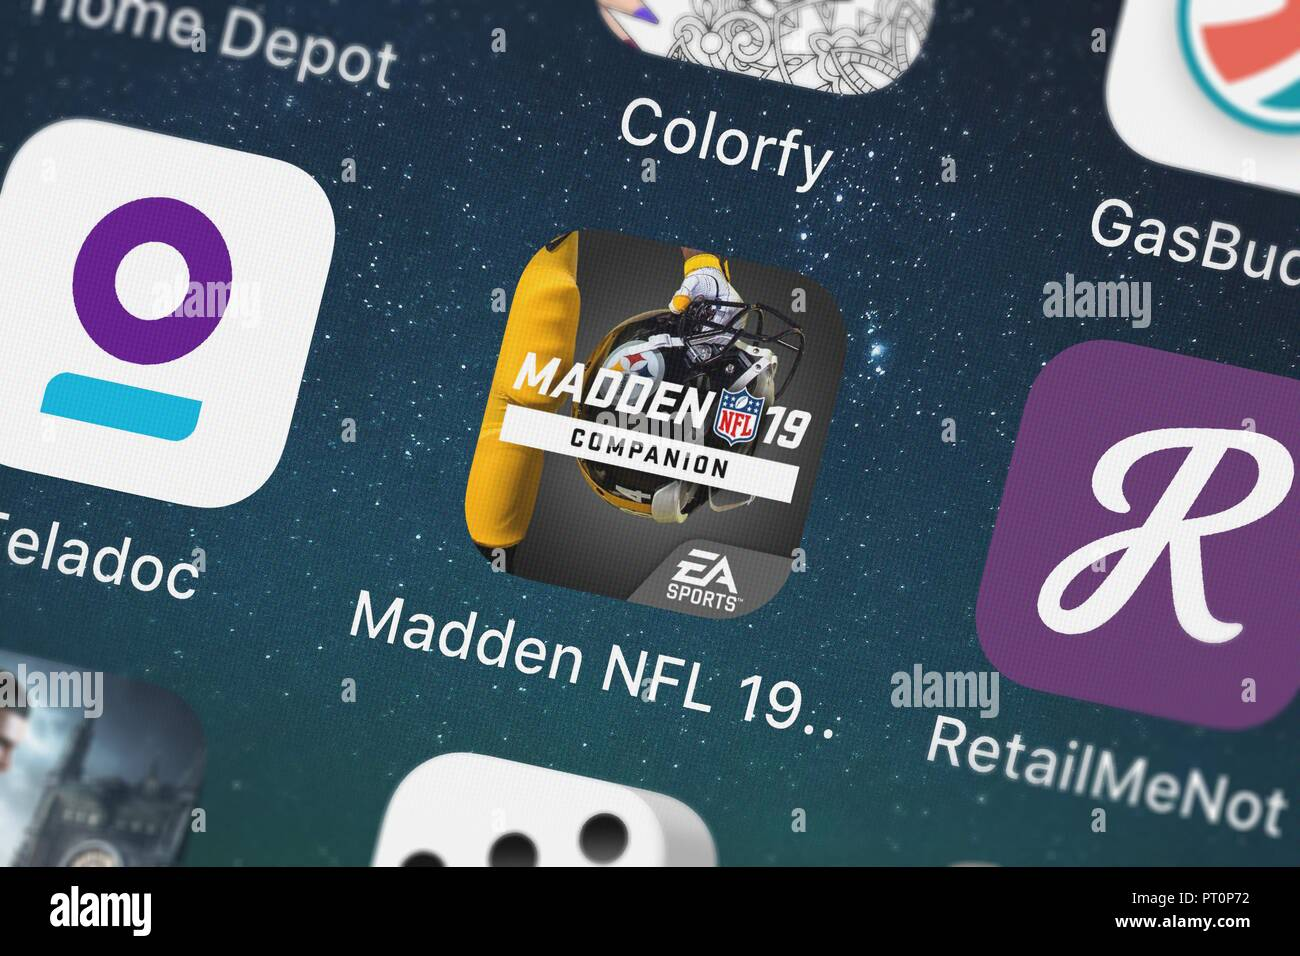 Londres, Royaume-Uni - Octobre 05, 2018 : Close-up shot of Electronic Arts populaires de l'app Madden NFL 19 compagnon. Photo Stock